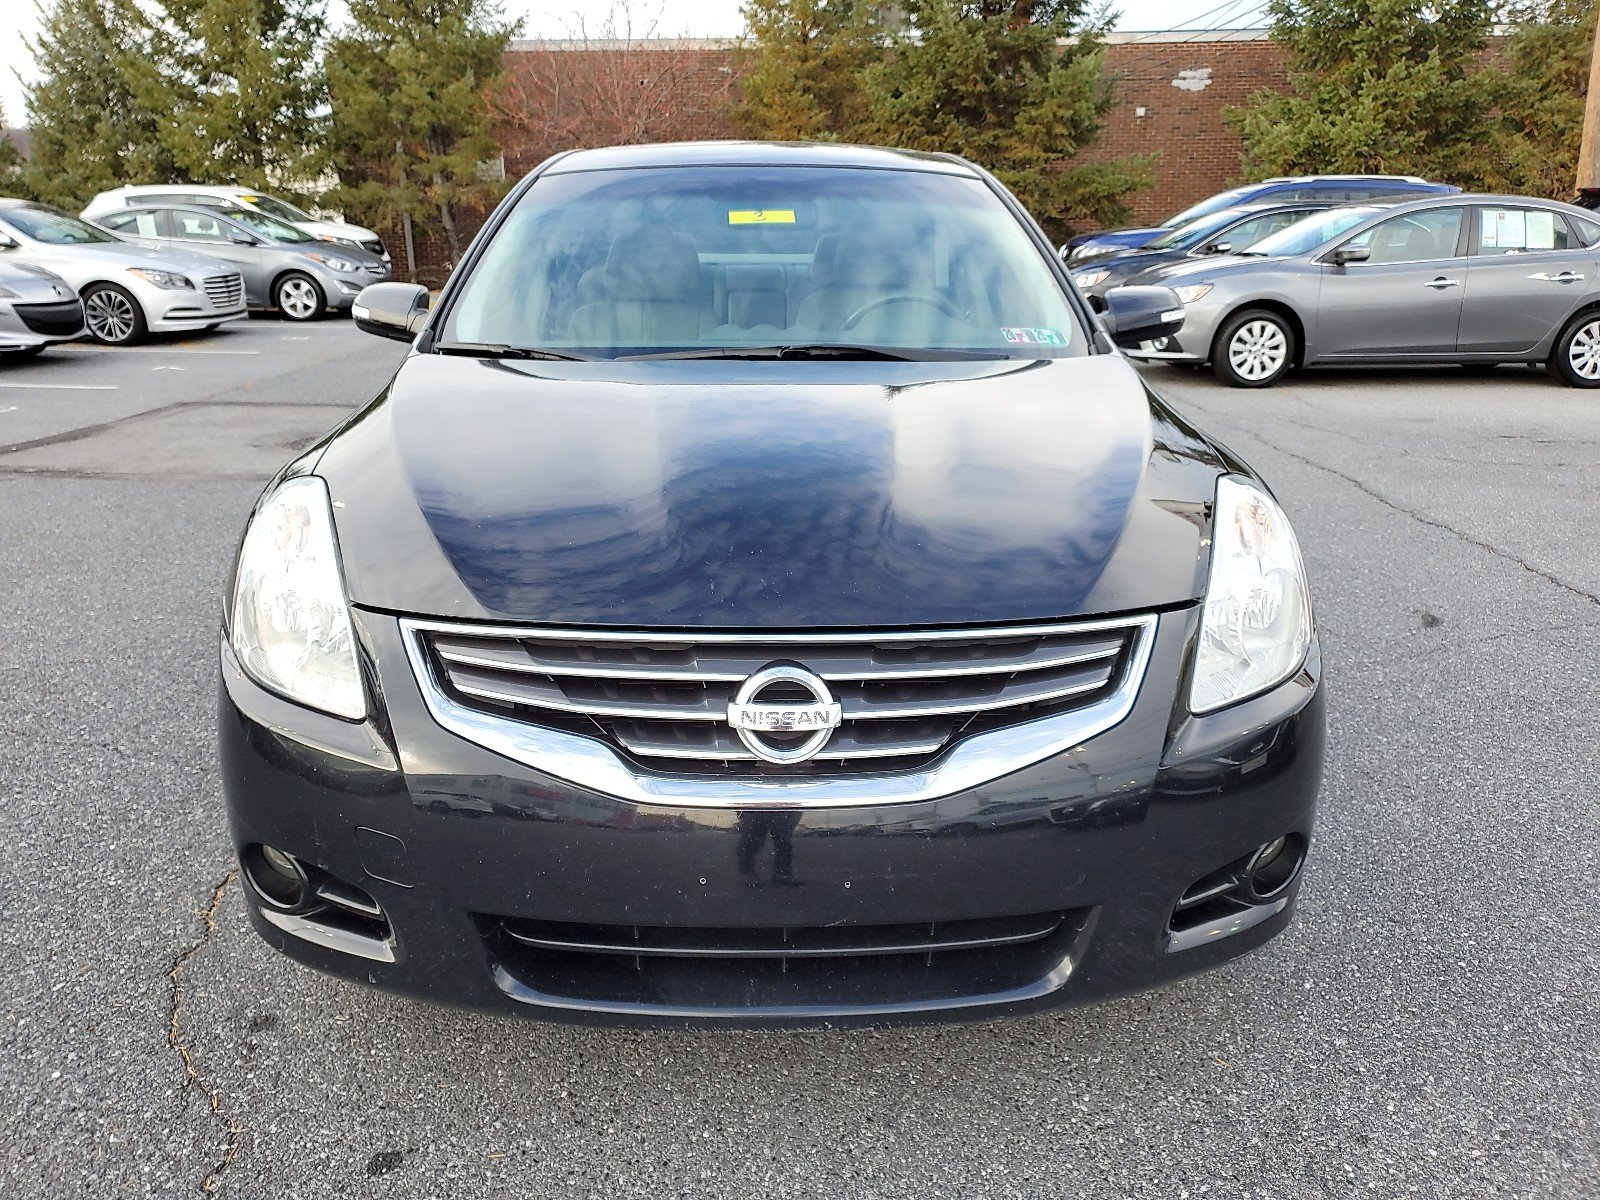 Pre-Owned 2011 Nissan Altima 3.5 SR